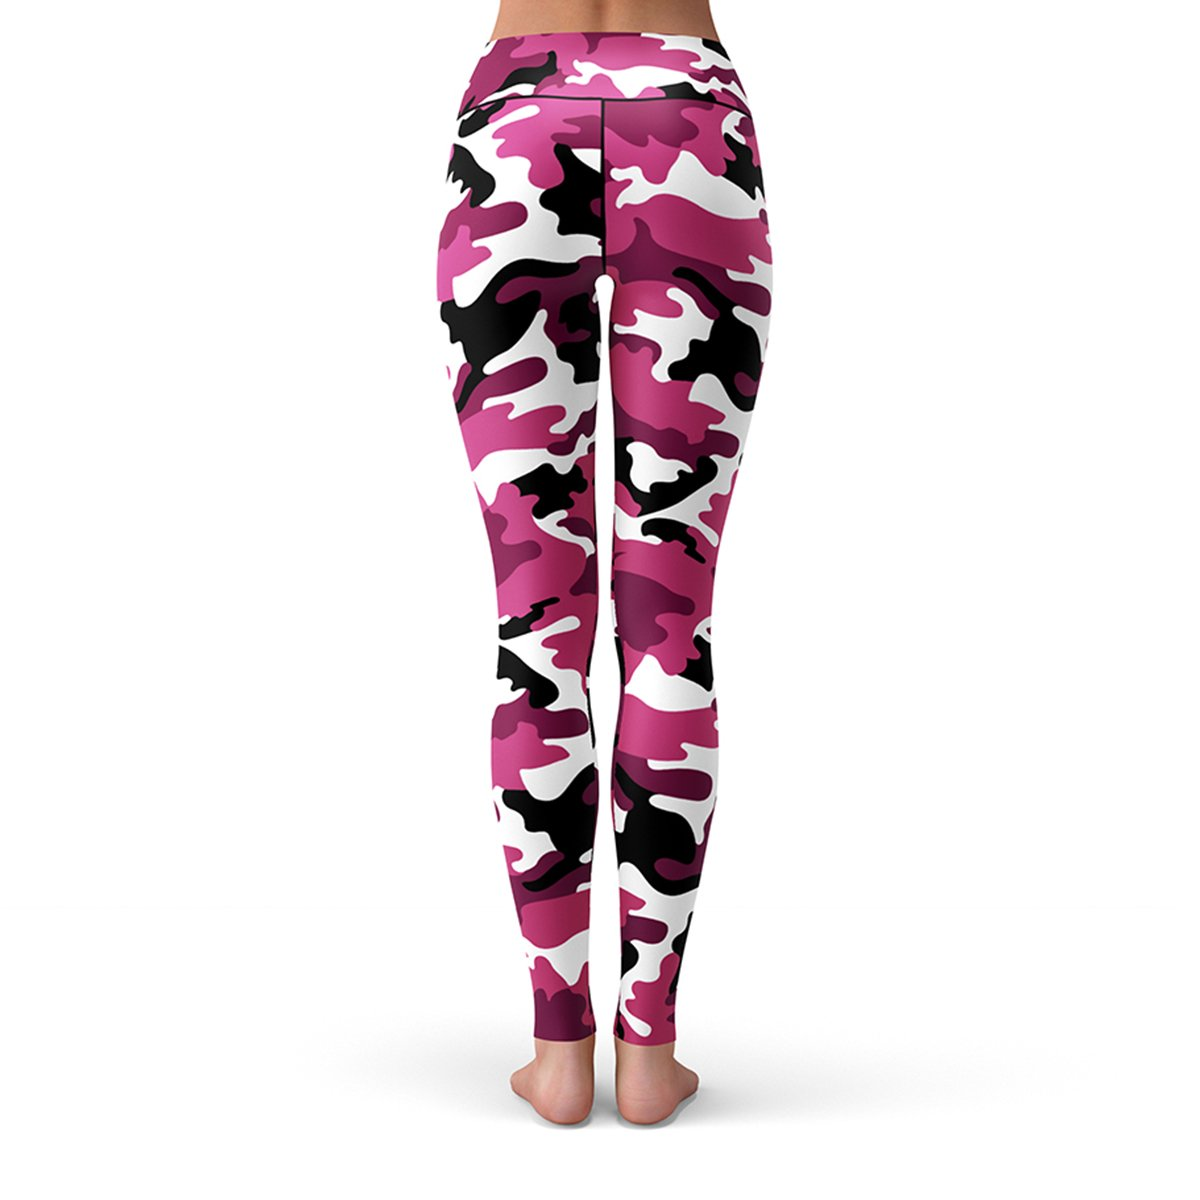 dd924076ca082 Pink Camo Leggings | Activewear for Gym, Running, Yoga, Hiking